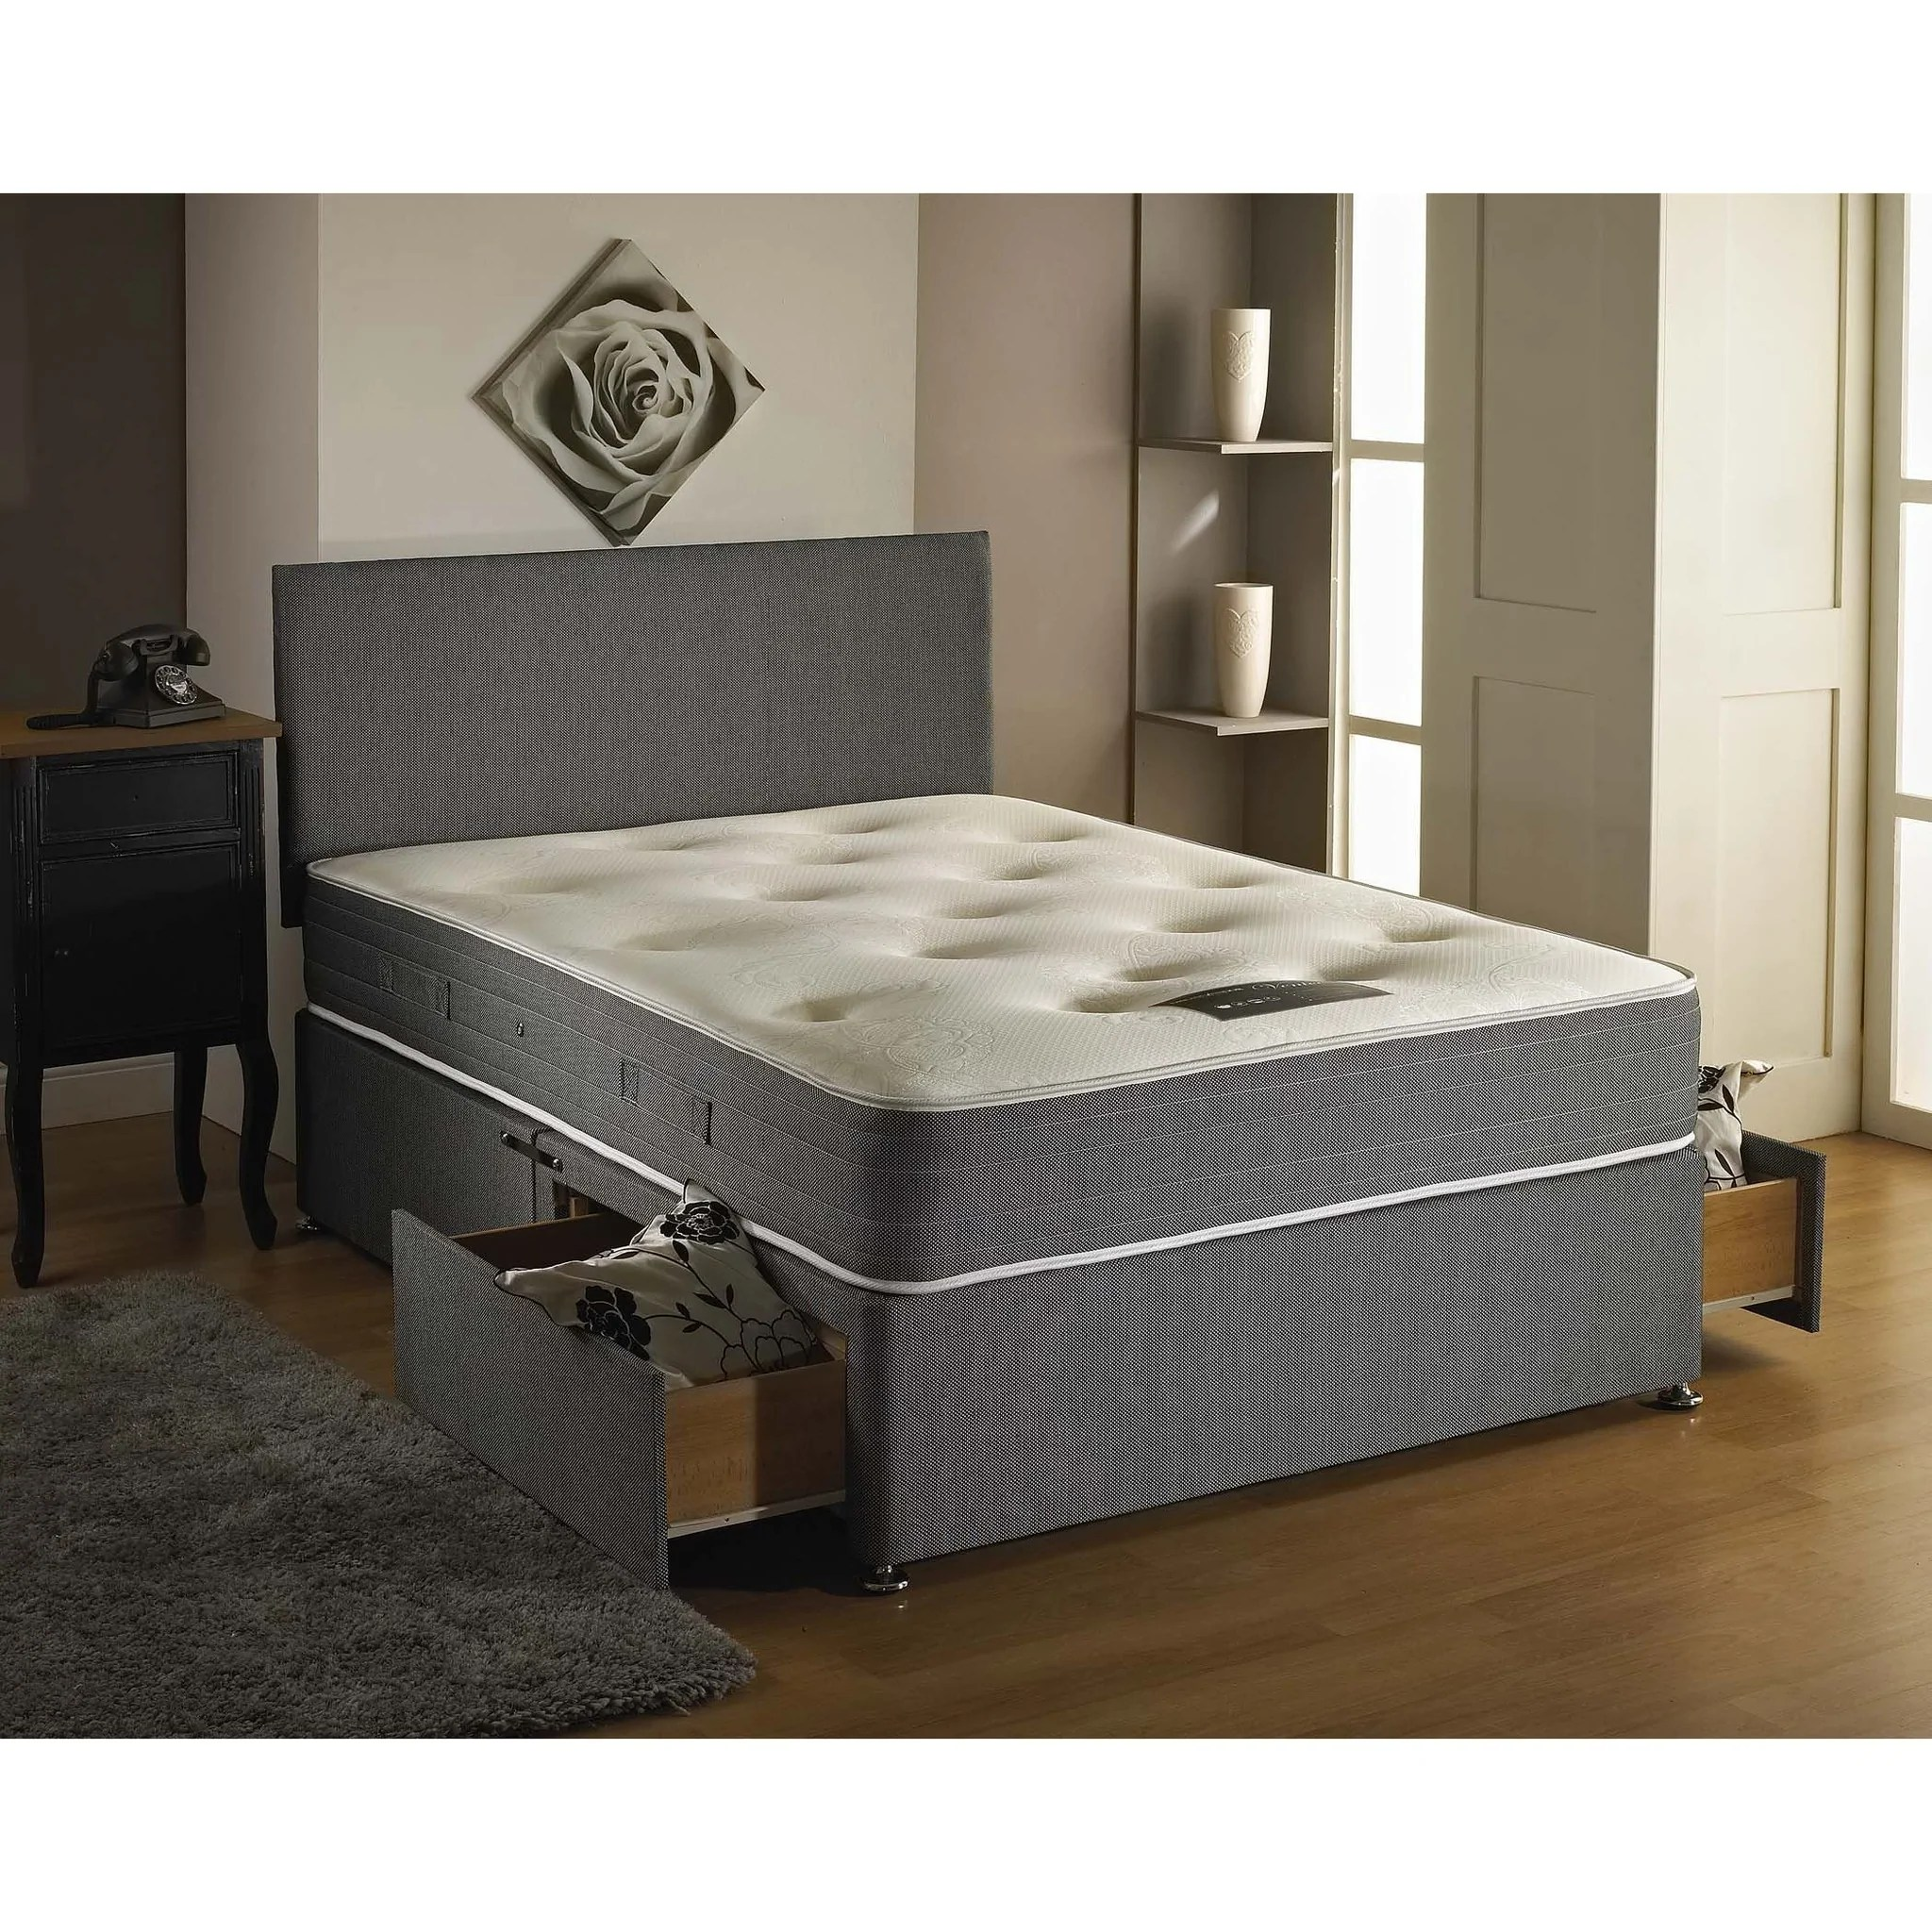 Double Divan Beds Venice Memory Foam Double Divan Bed Sure Sleep Beds